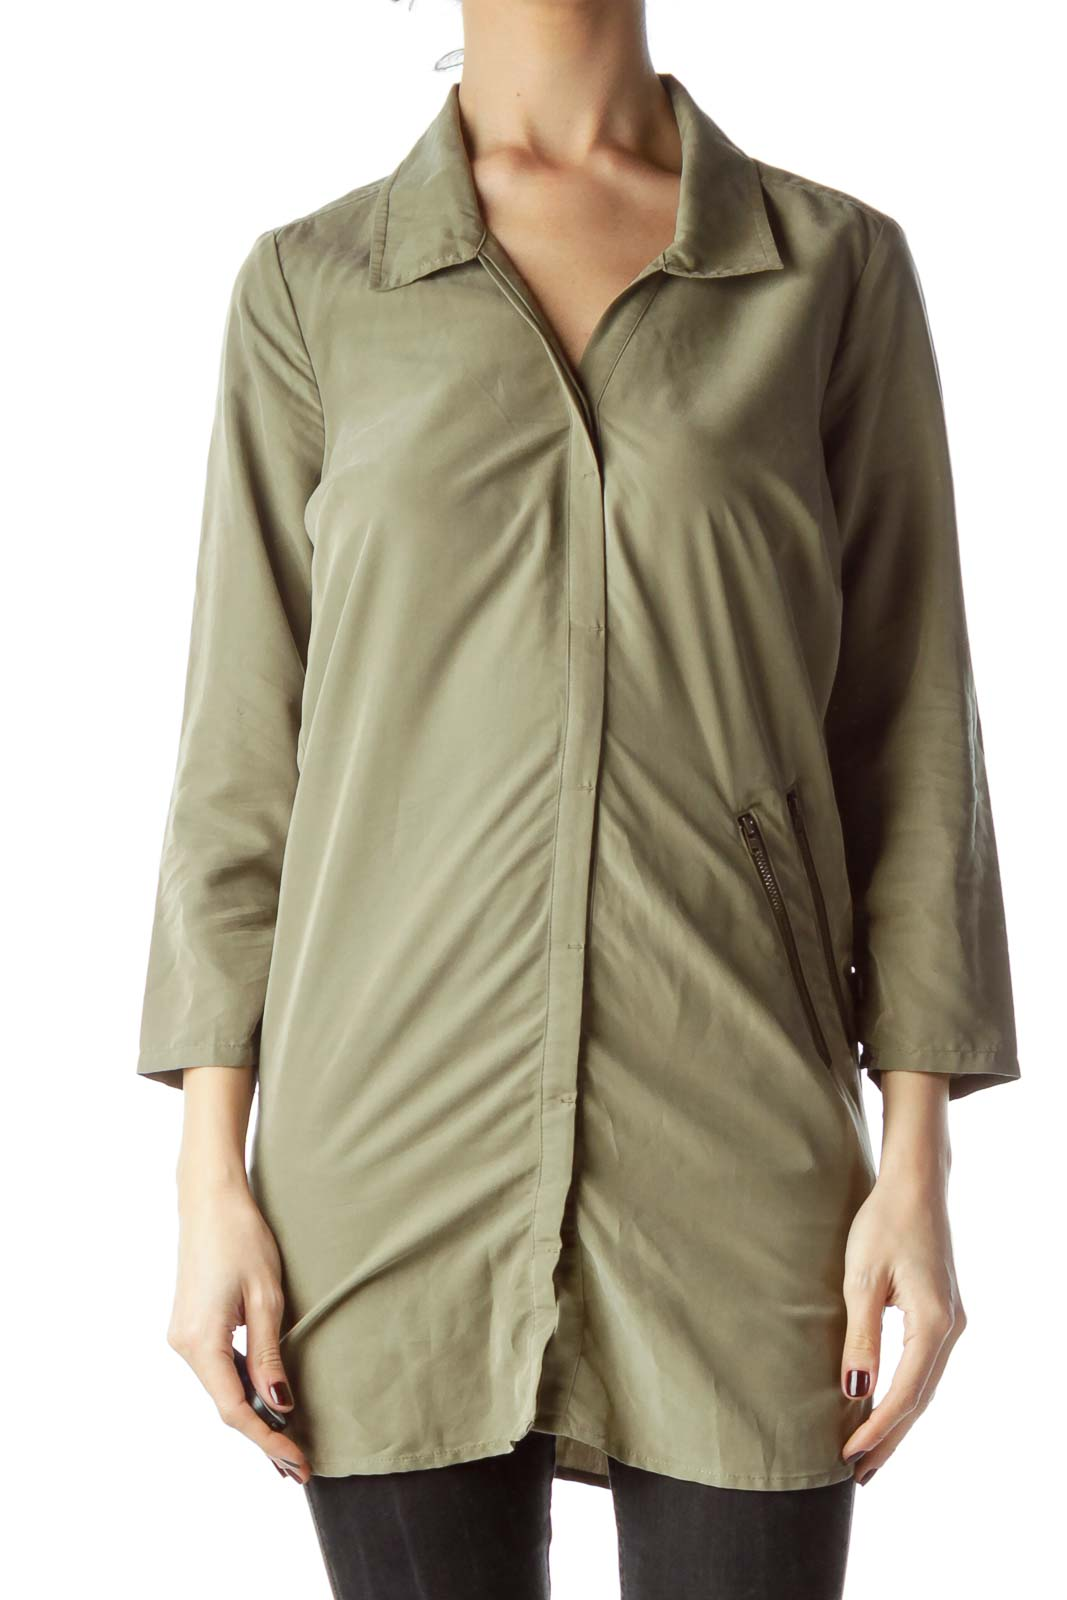 Army Green Long Shirt with Zipper Accents Front